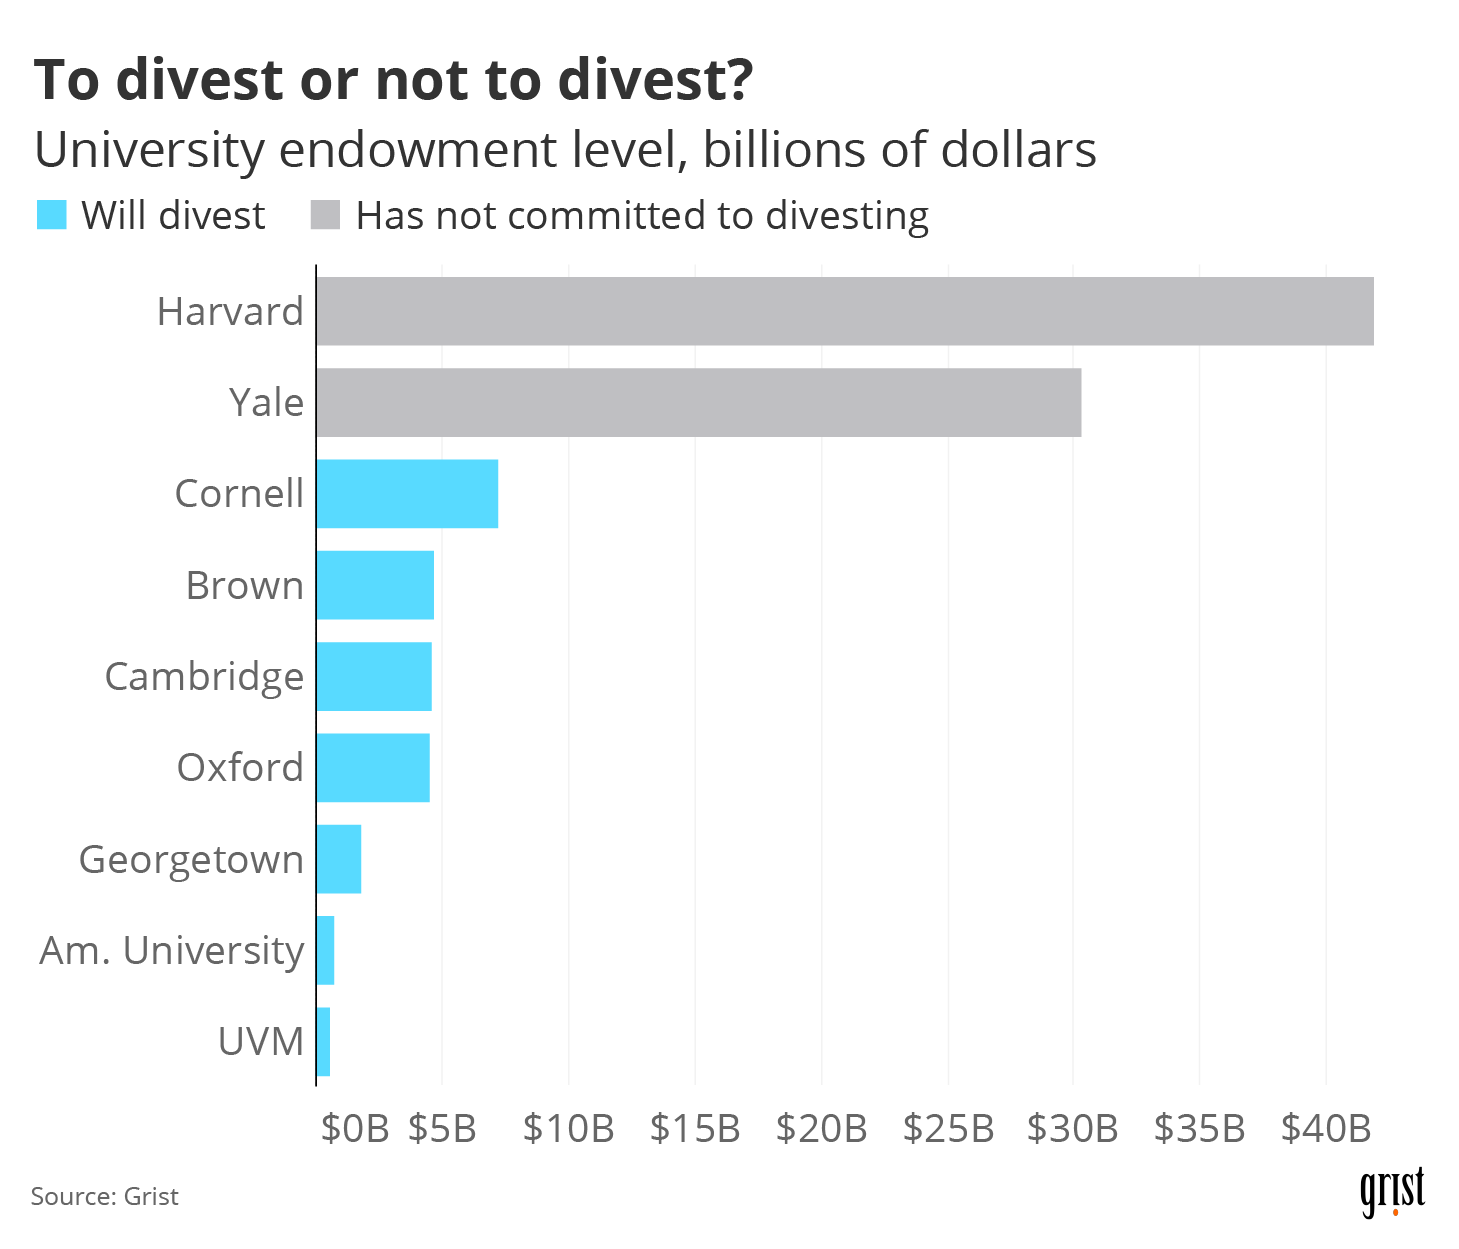 A bar chart showing divestment decisions by level of university endowment (in billions of dollars). Harvard and Yale have the largest endowments of the universities shown — but have not committed to divesting.